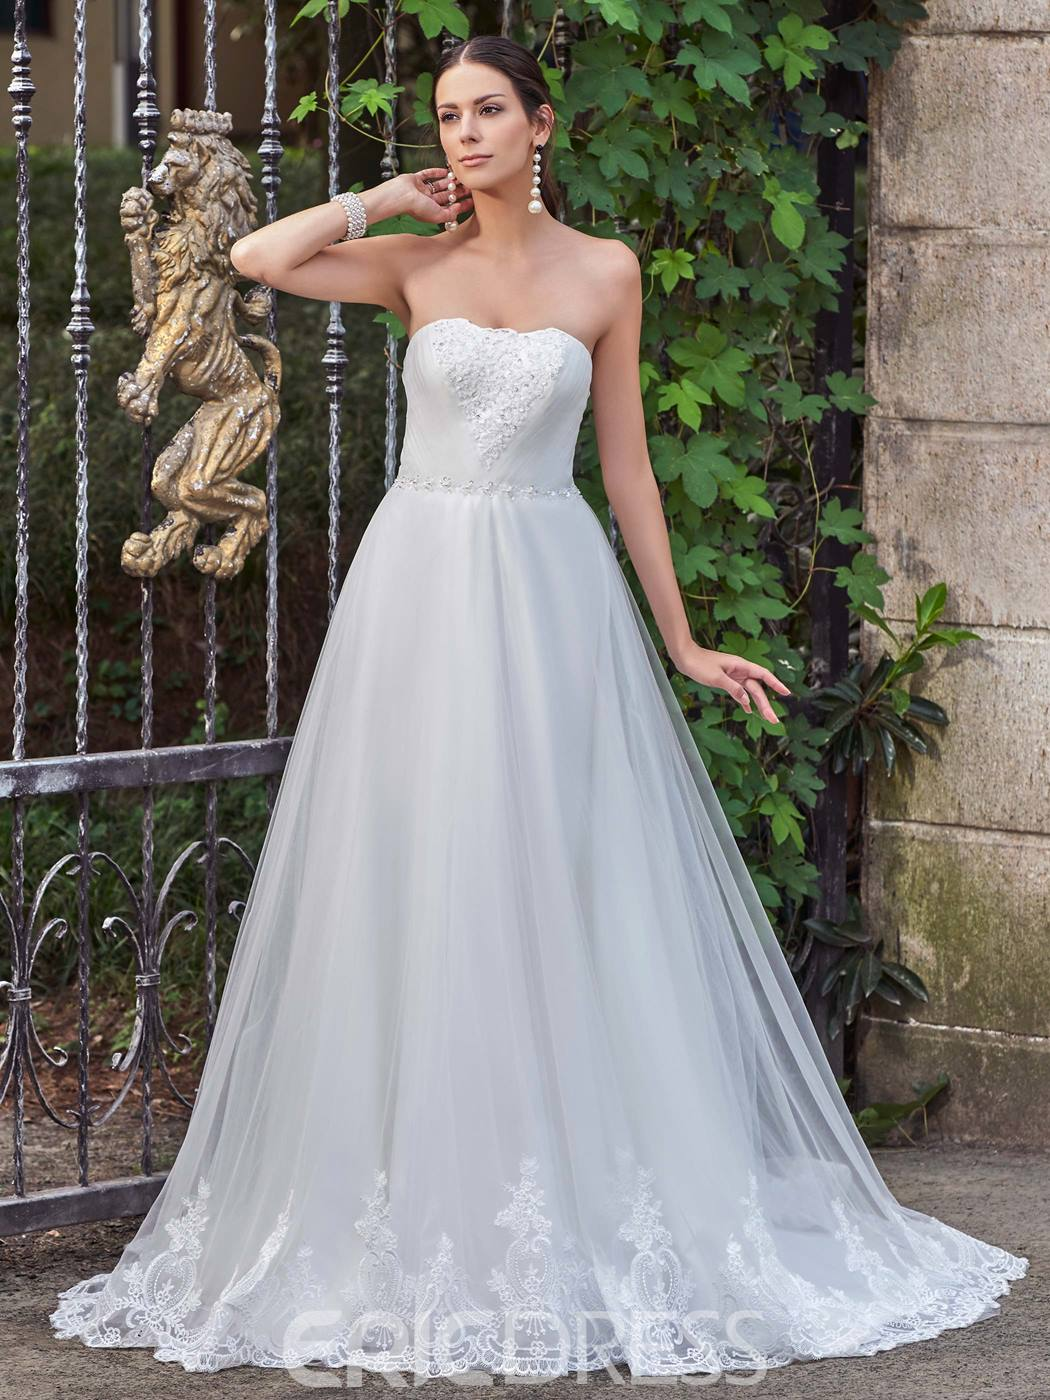 Ericdress Elegant Appliques Court Train Strapless A Line Wedding Dress